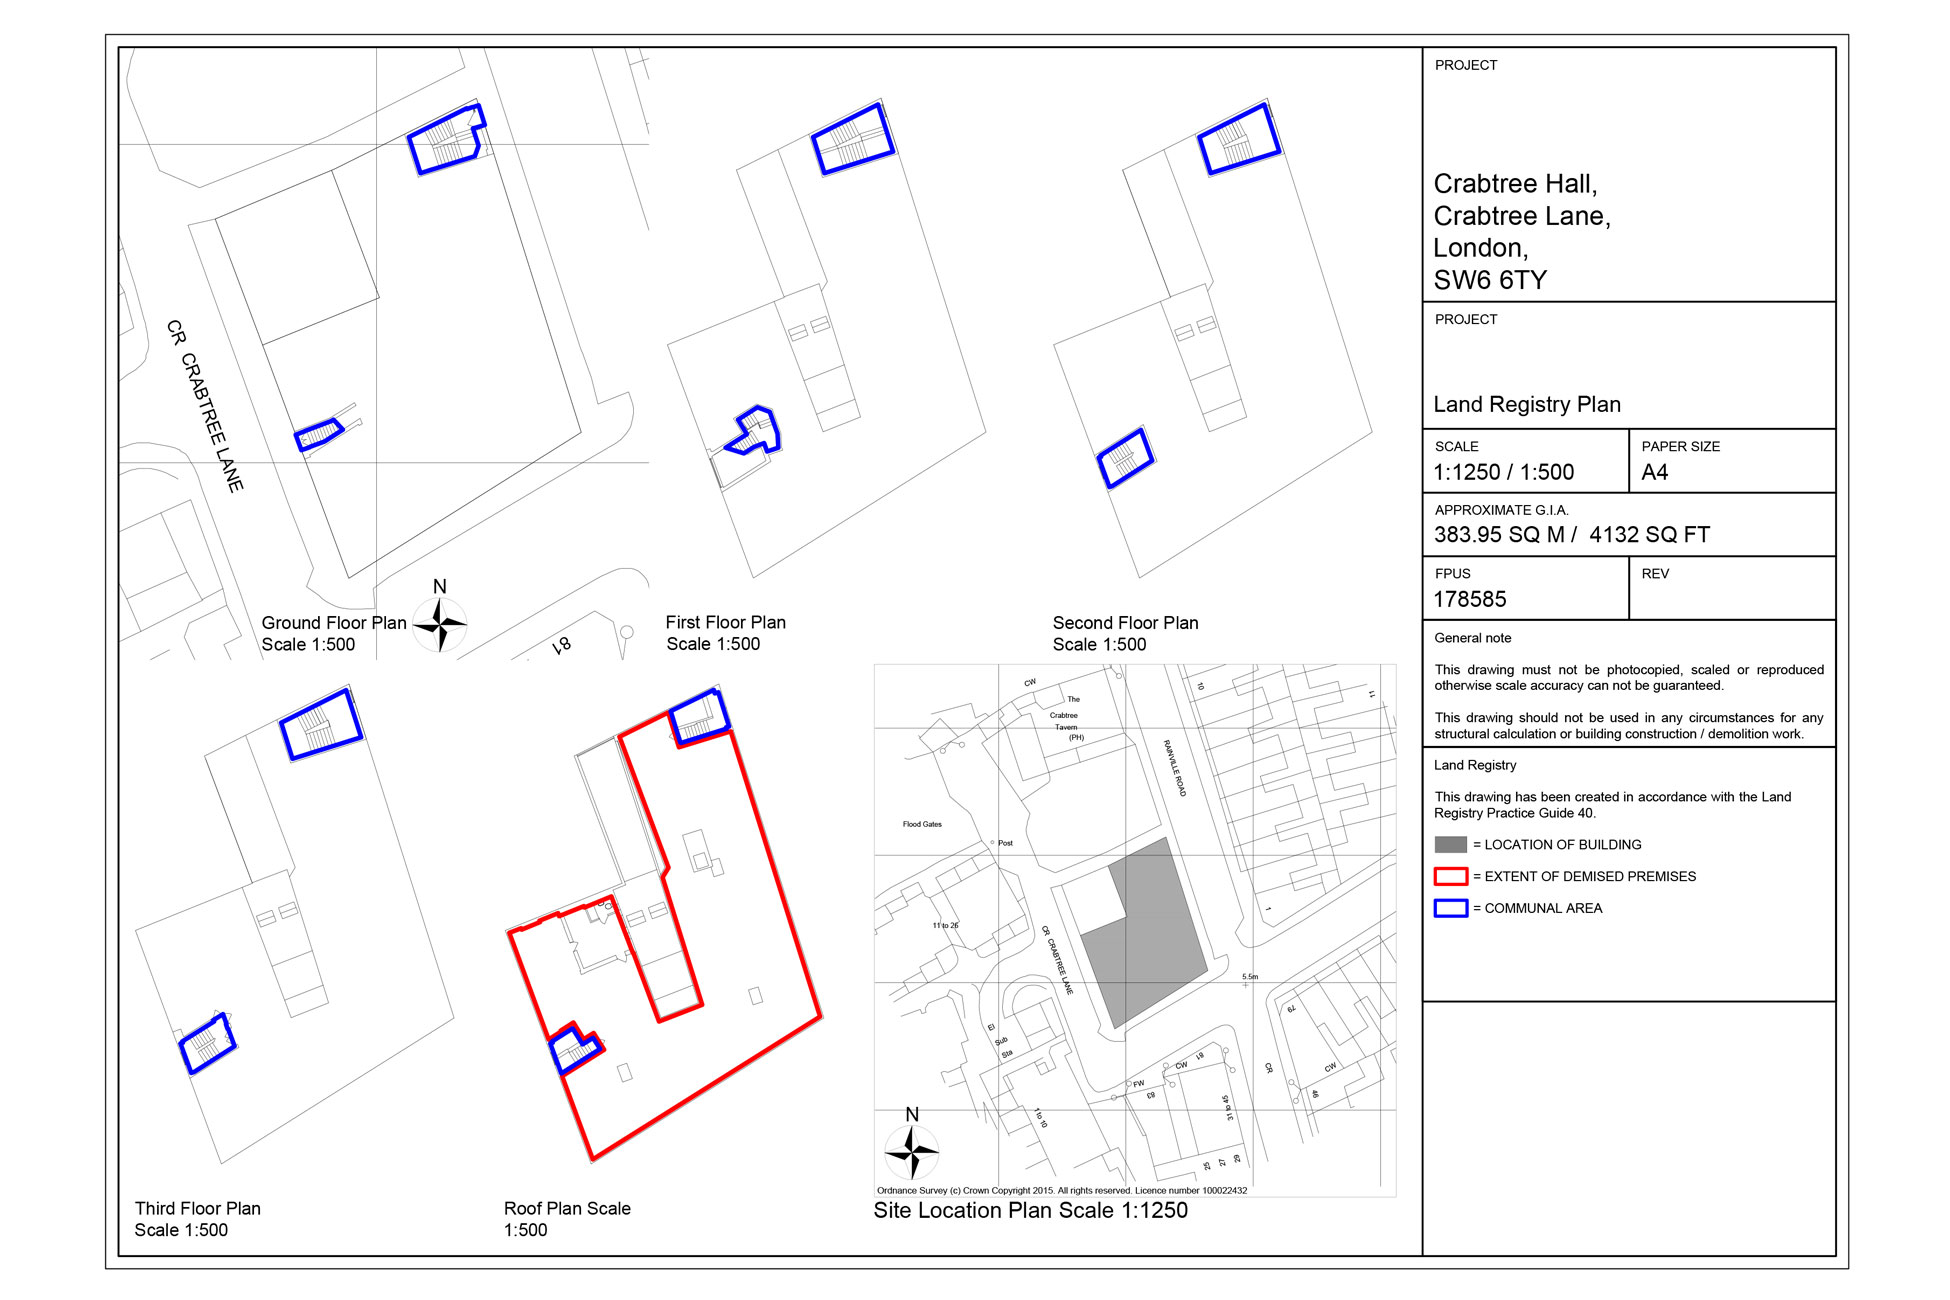 Land Registry plan